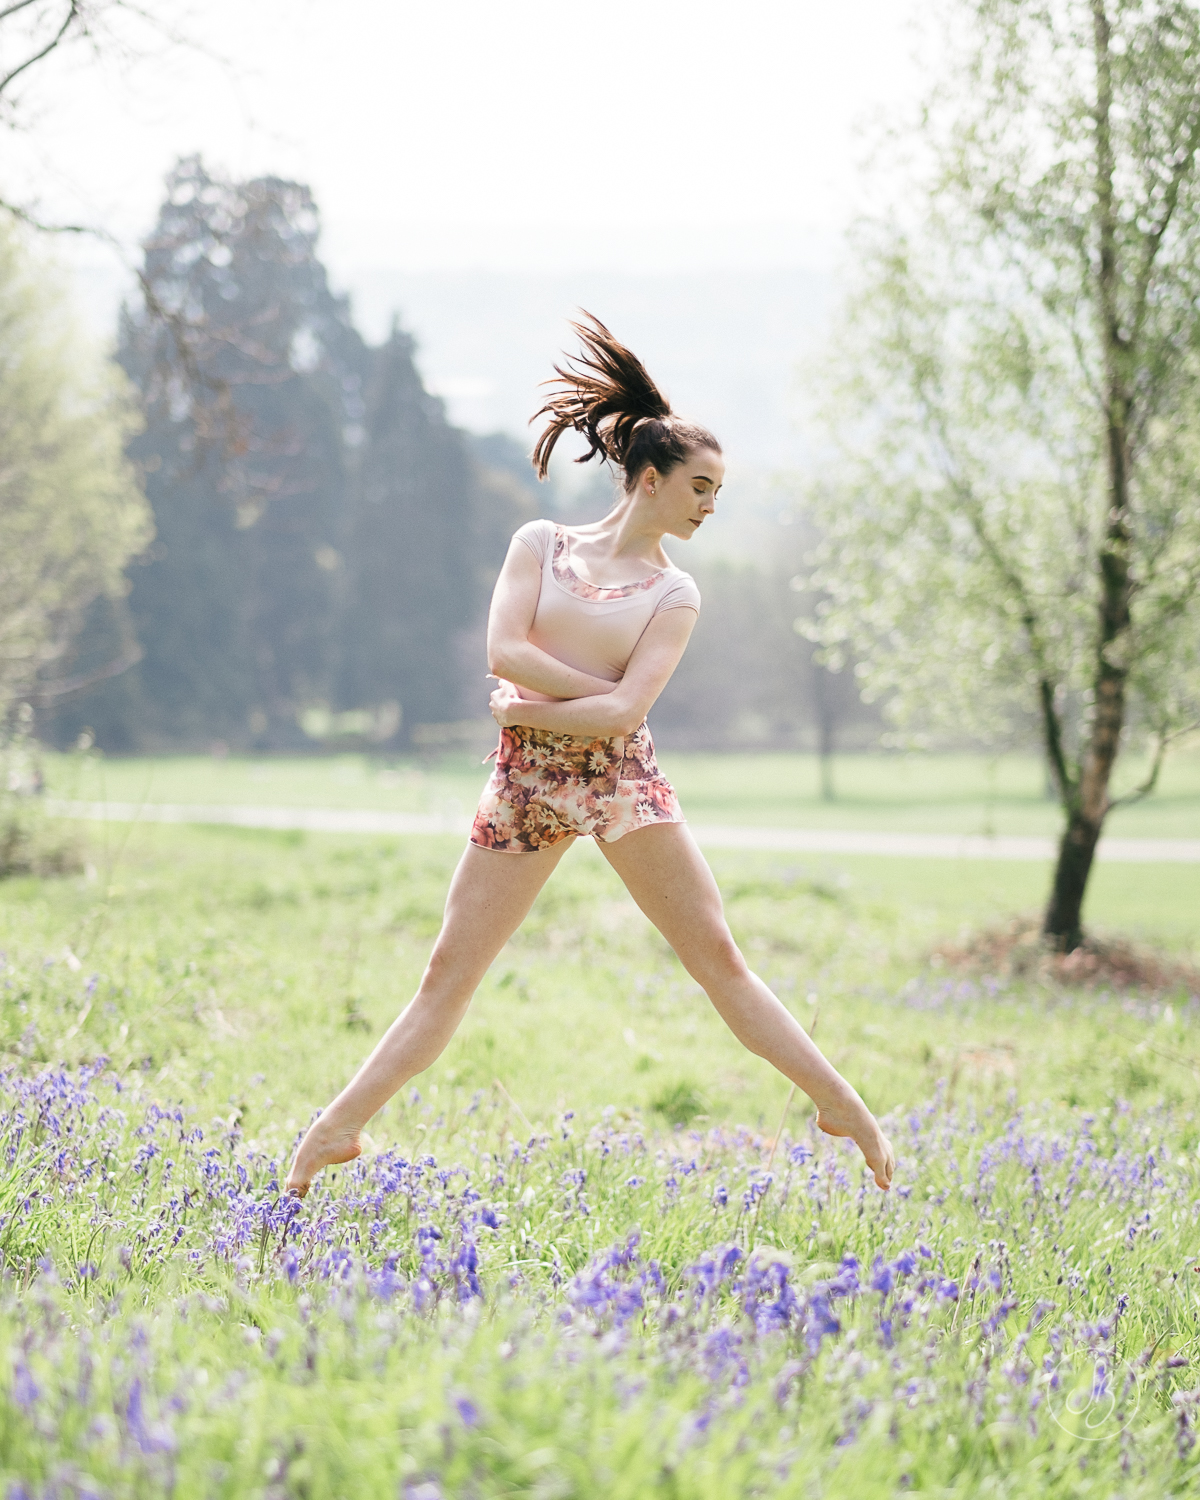 Suzi Bird Dance Photographer Bristol Clevedon London 3.jpg